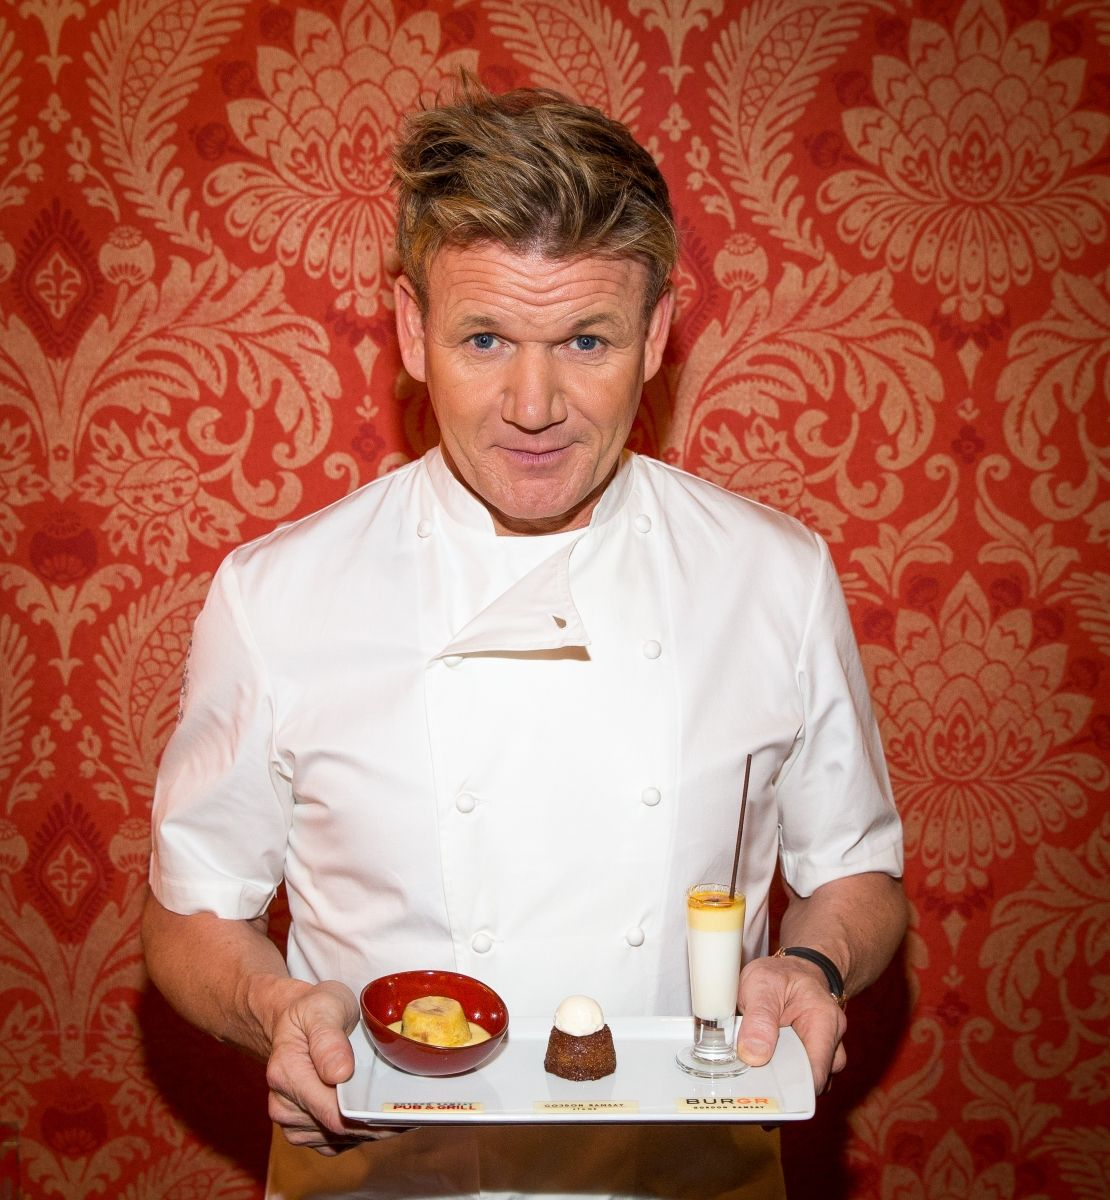 Celebrity chef gordon ramsay shows off his special anniversary celebrity chef gordon ramsay shows off his special anniversary dessert trio at gordon ramsay pub grill in las vegas photo credit erik kabik fandeluxe Gallery